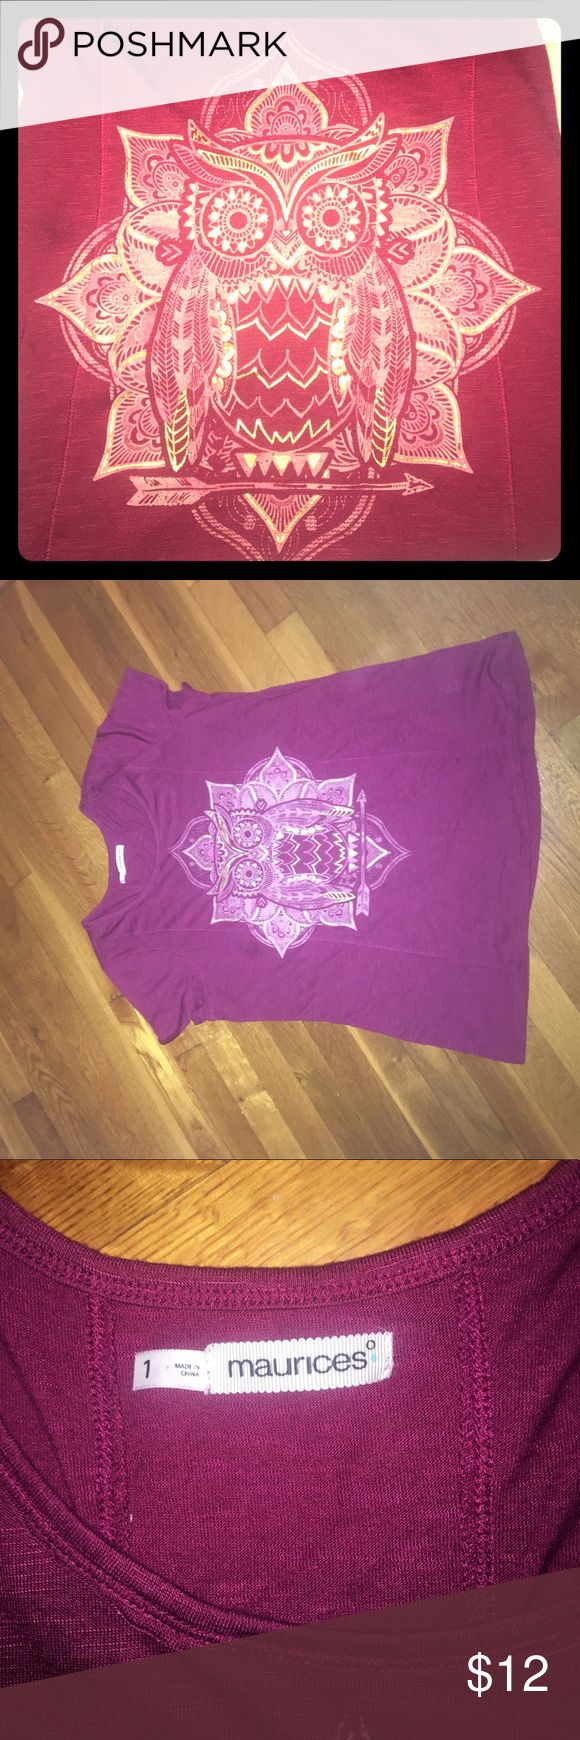 Owl shirt Size 1 Maurice's owl tshirt burgundy colored with gold and pink owl Maurices Tops